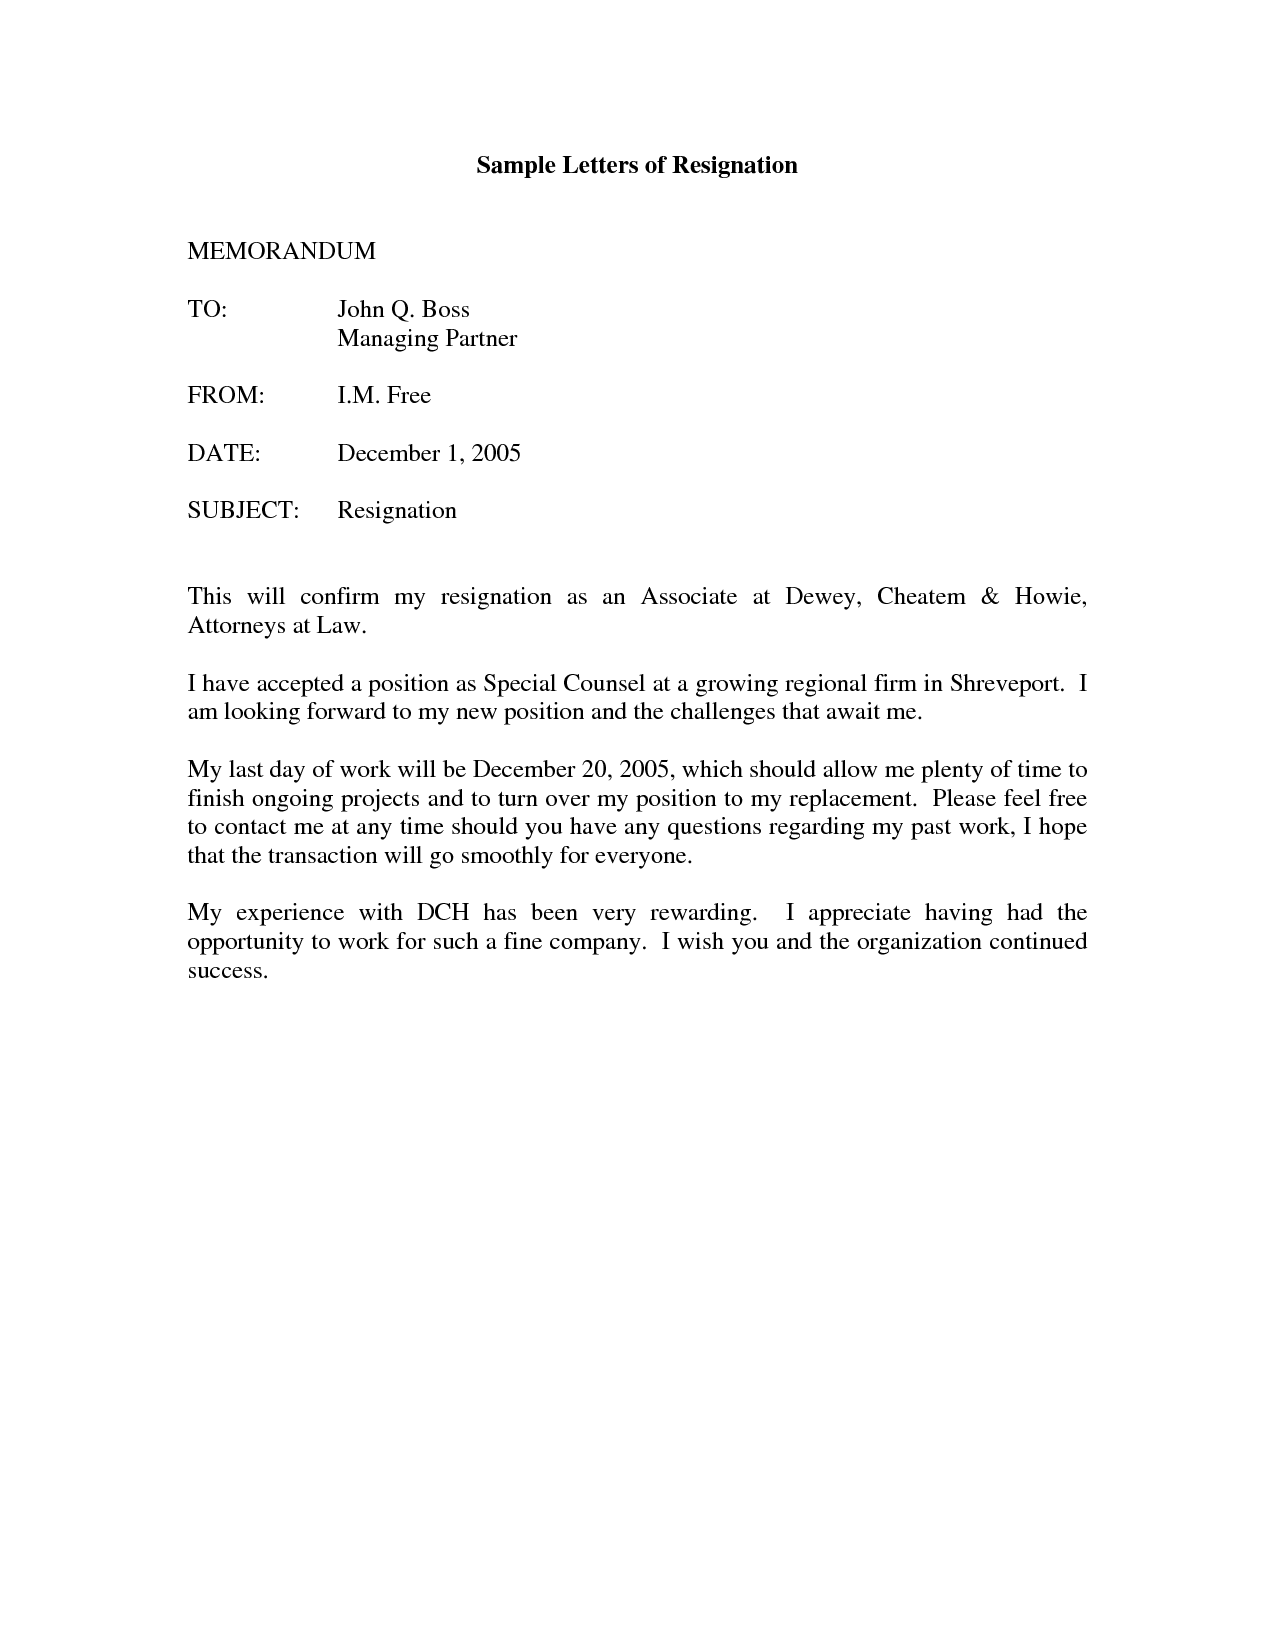 free letter of resignation - Template Letters Of Resignation